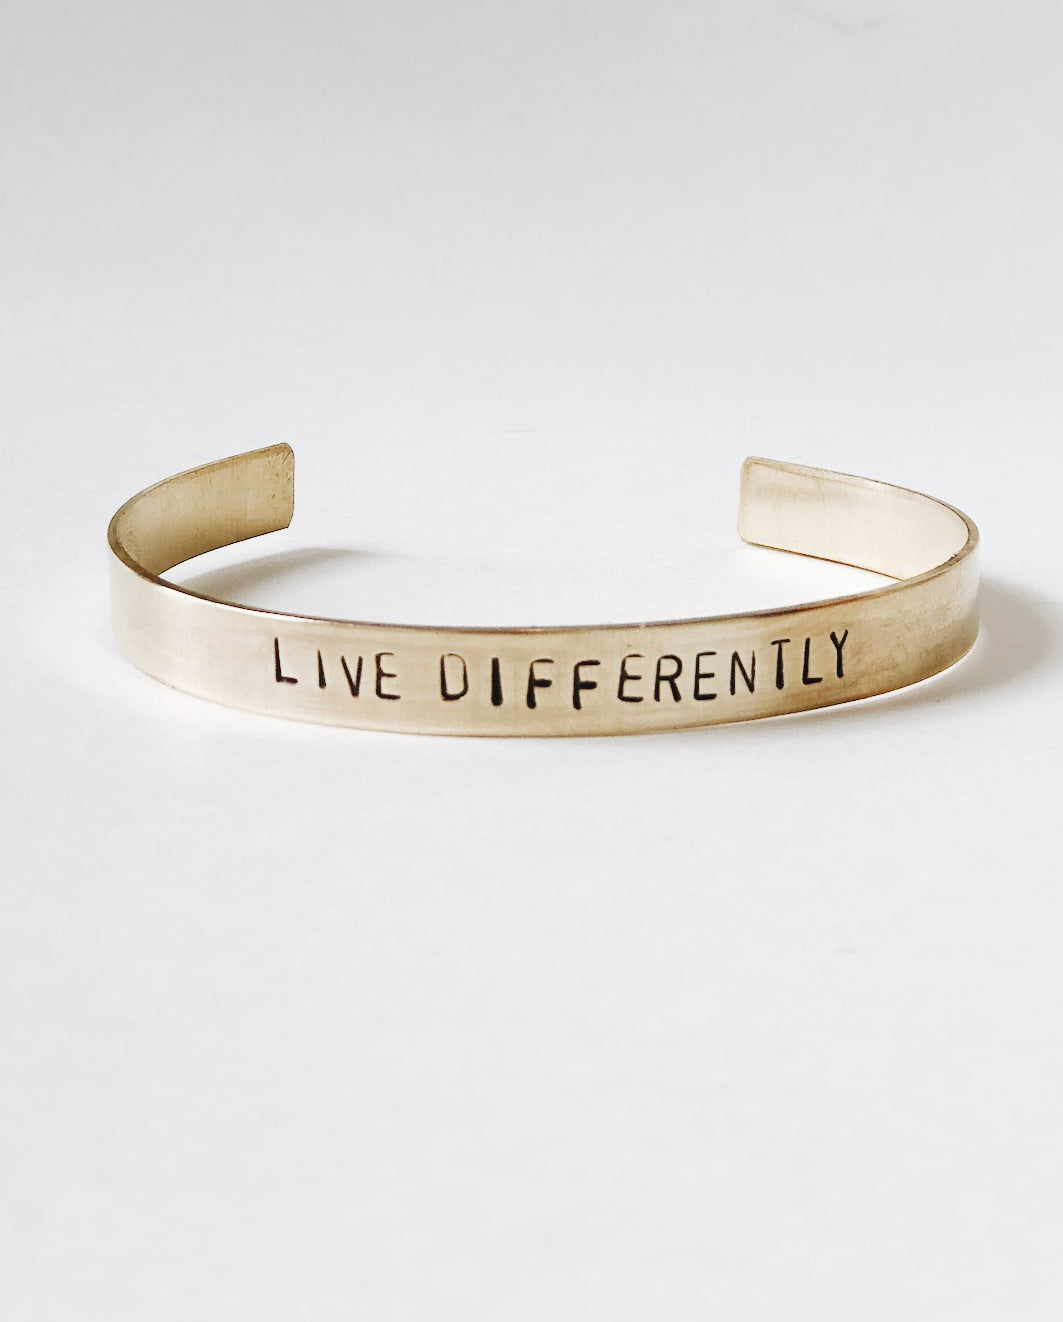 LIVE DIFFERENTLY Hand-Stamped Brass Cuff